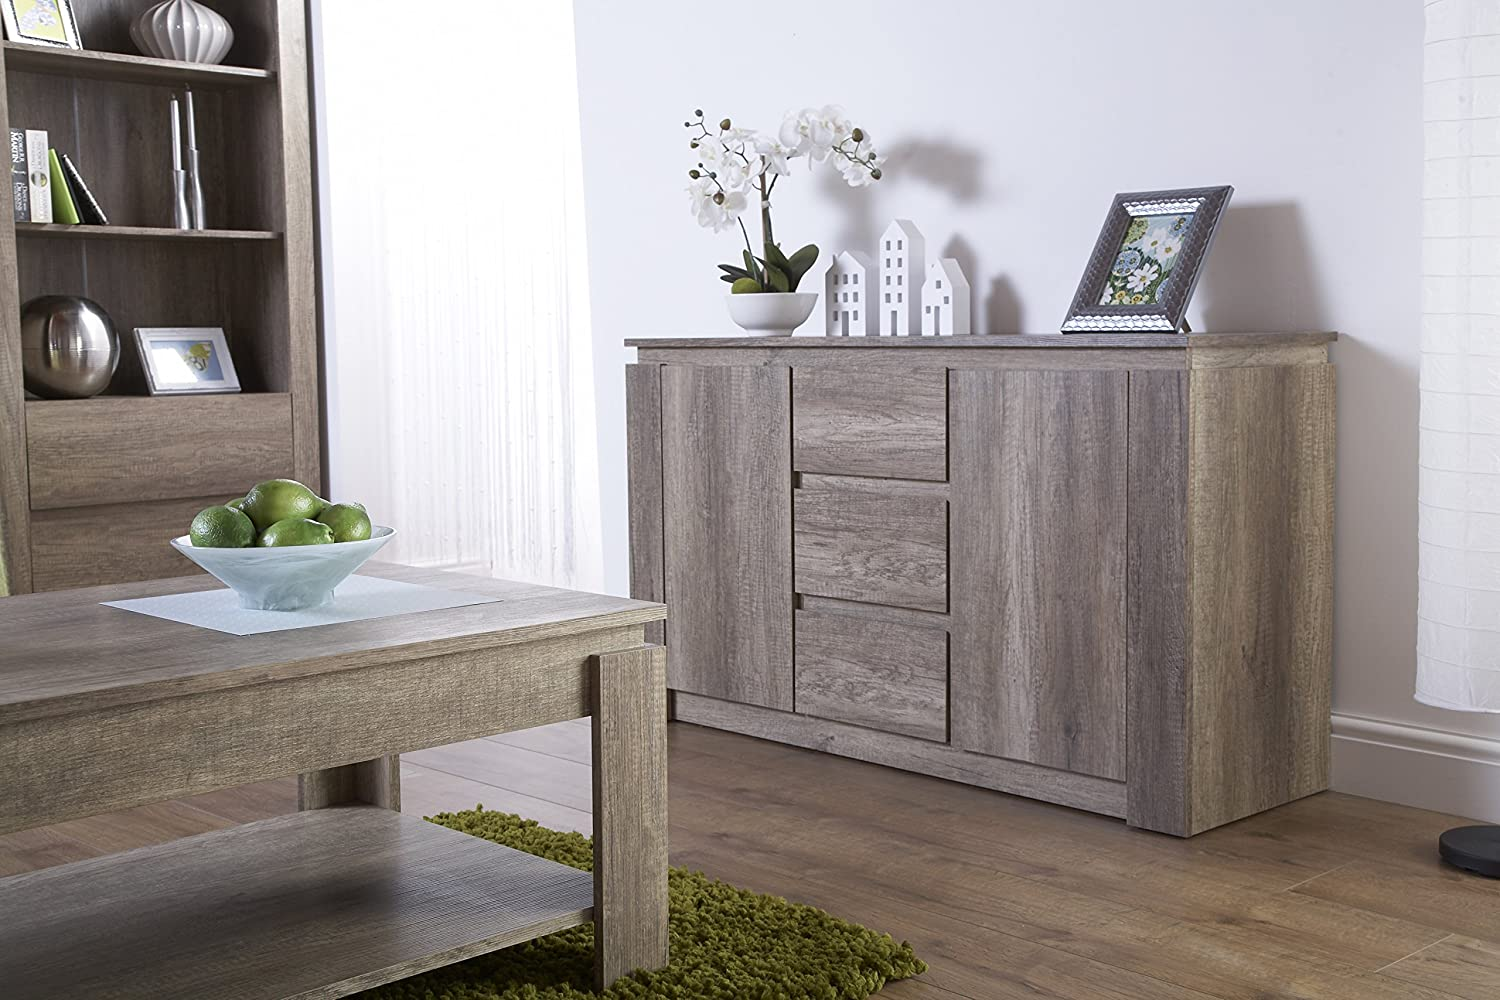 Right Deals UK Canyon 2 Door 3 Drawer Sideboard - Unique 3D Design Oak Finish GFW - The Furniture Warehouse